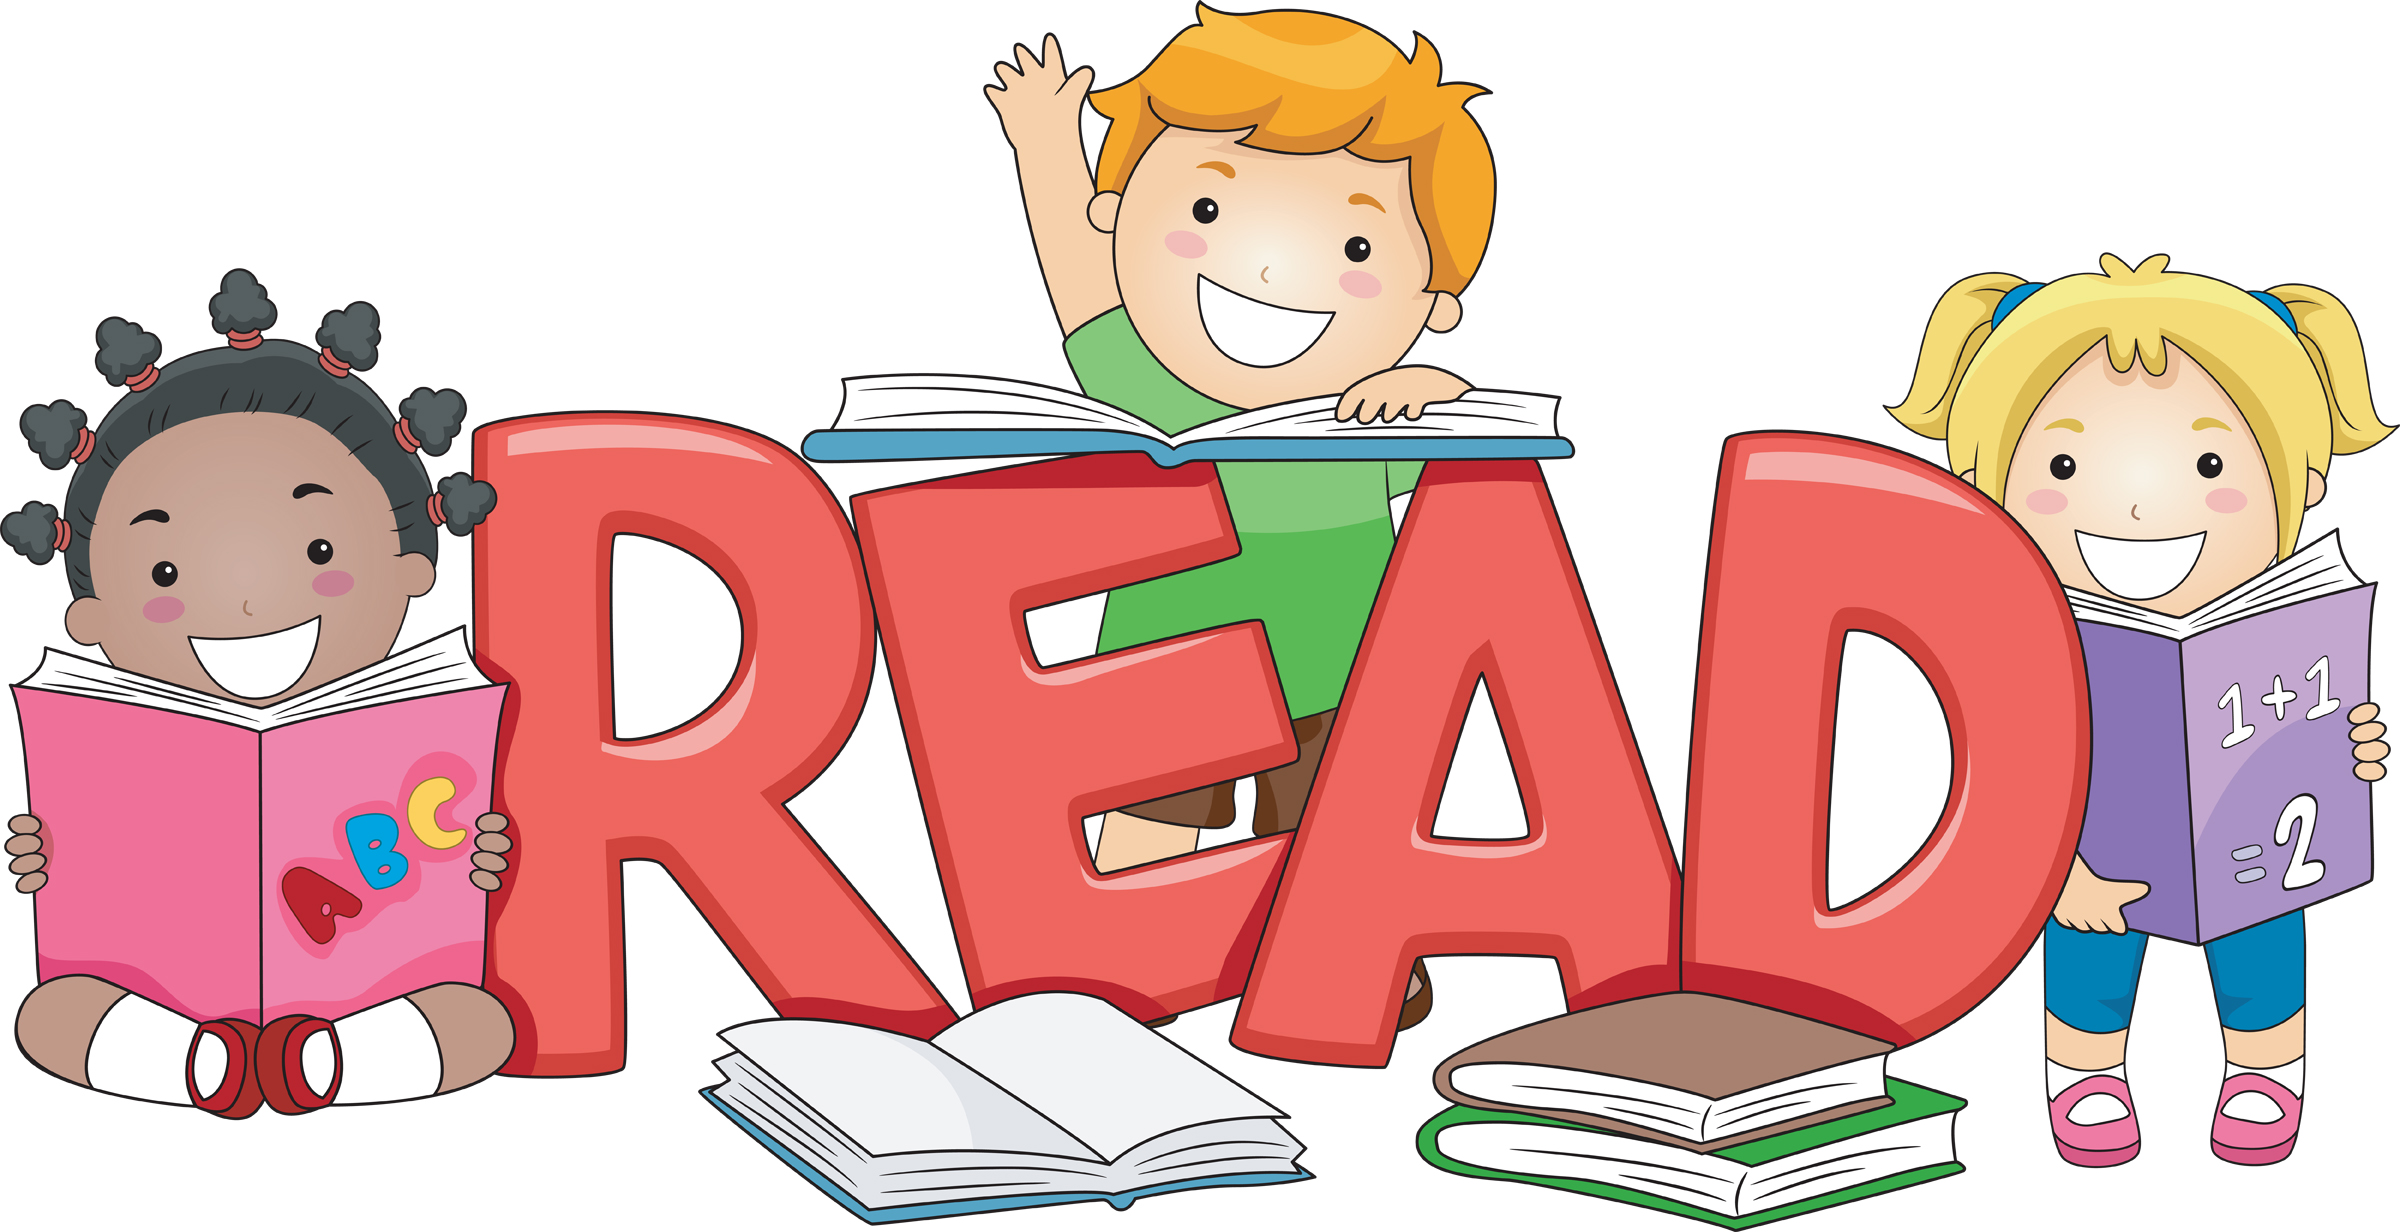 Free reading clipart images.